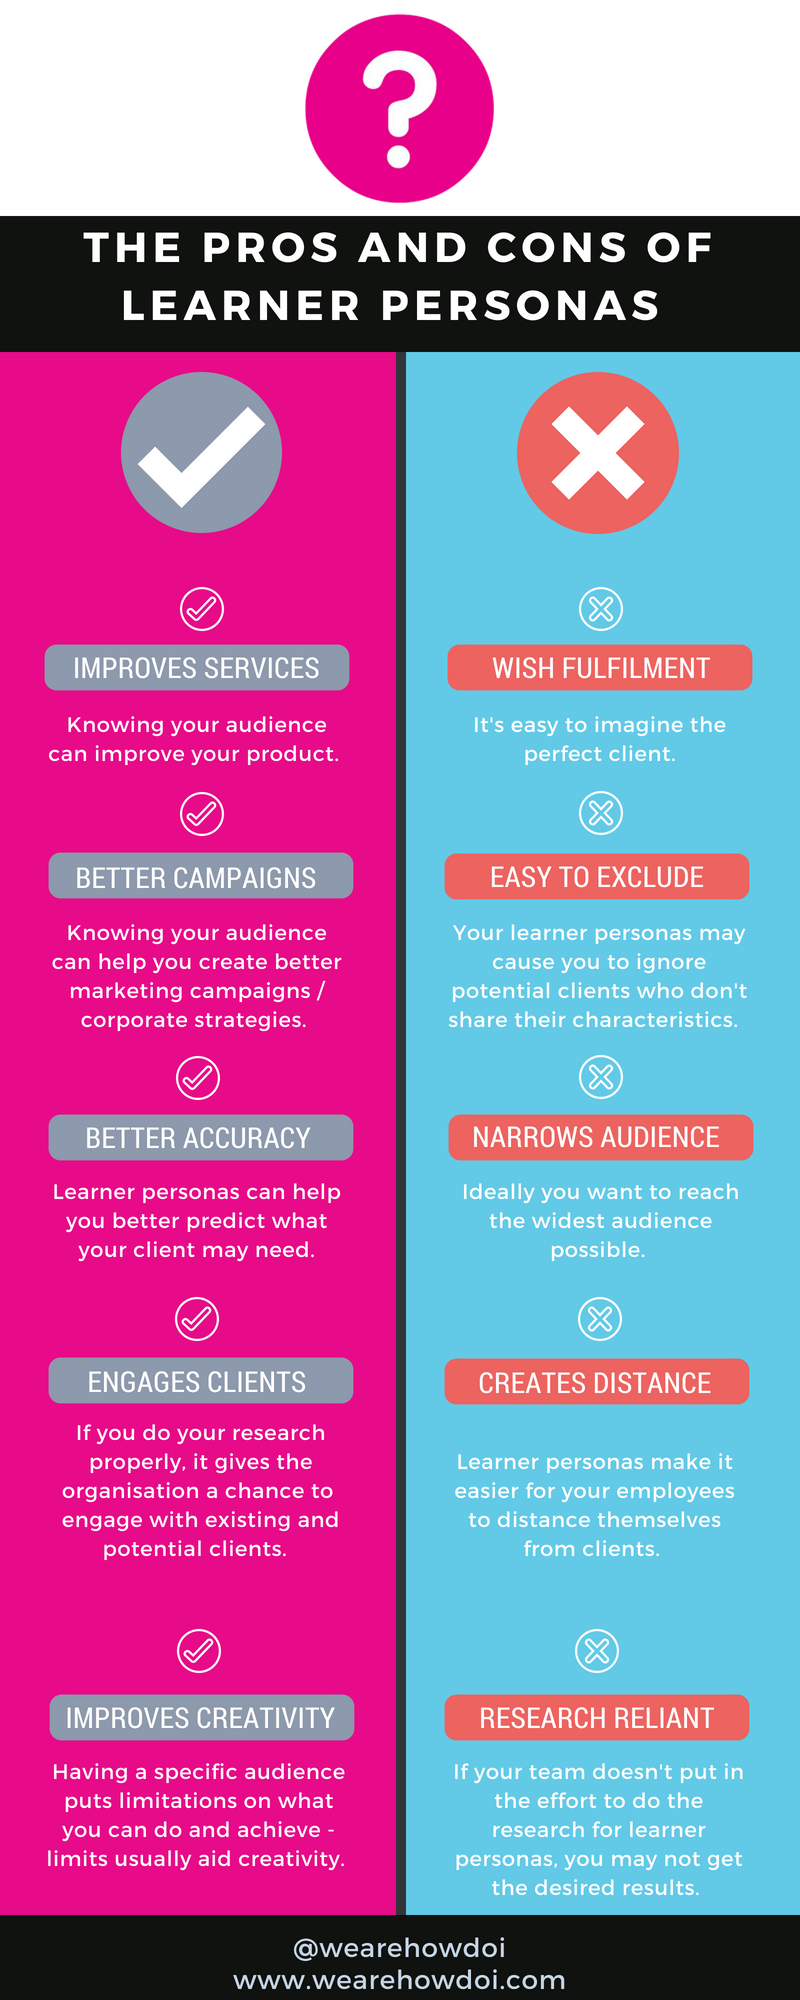 Pros and Cons of Learner Personas 2 (002).png